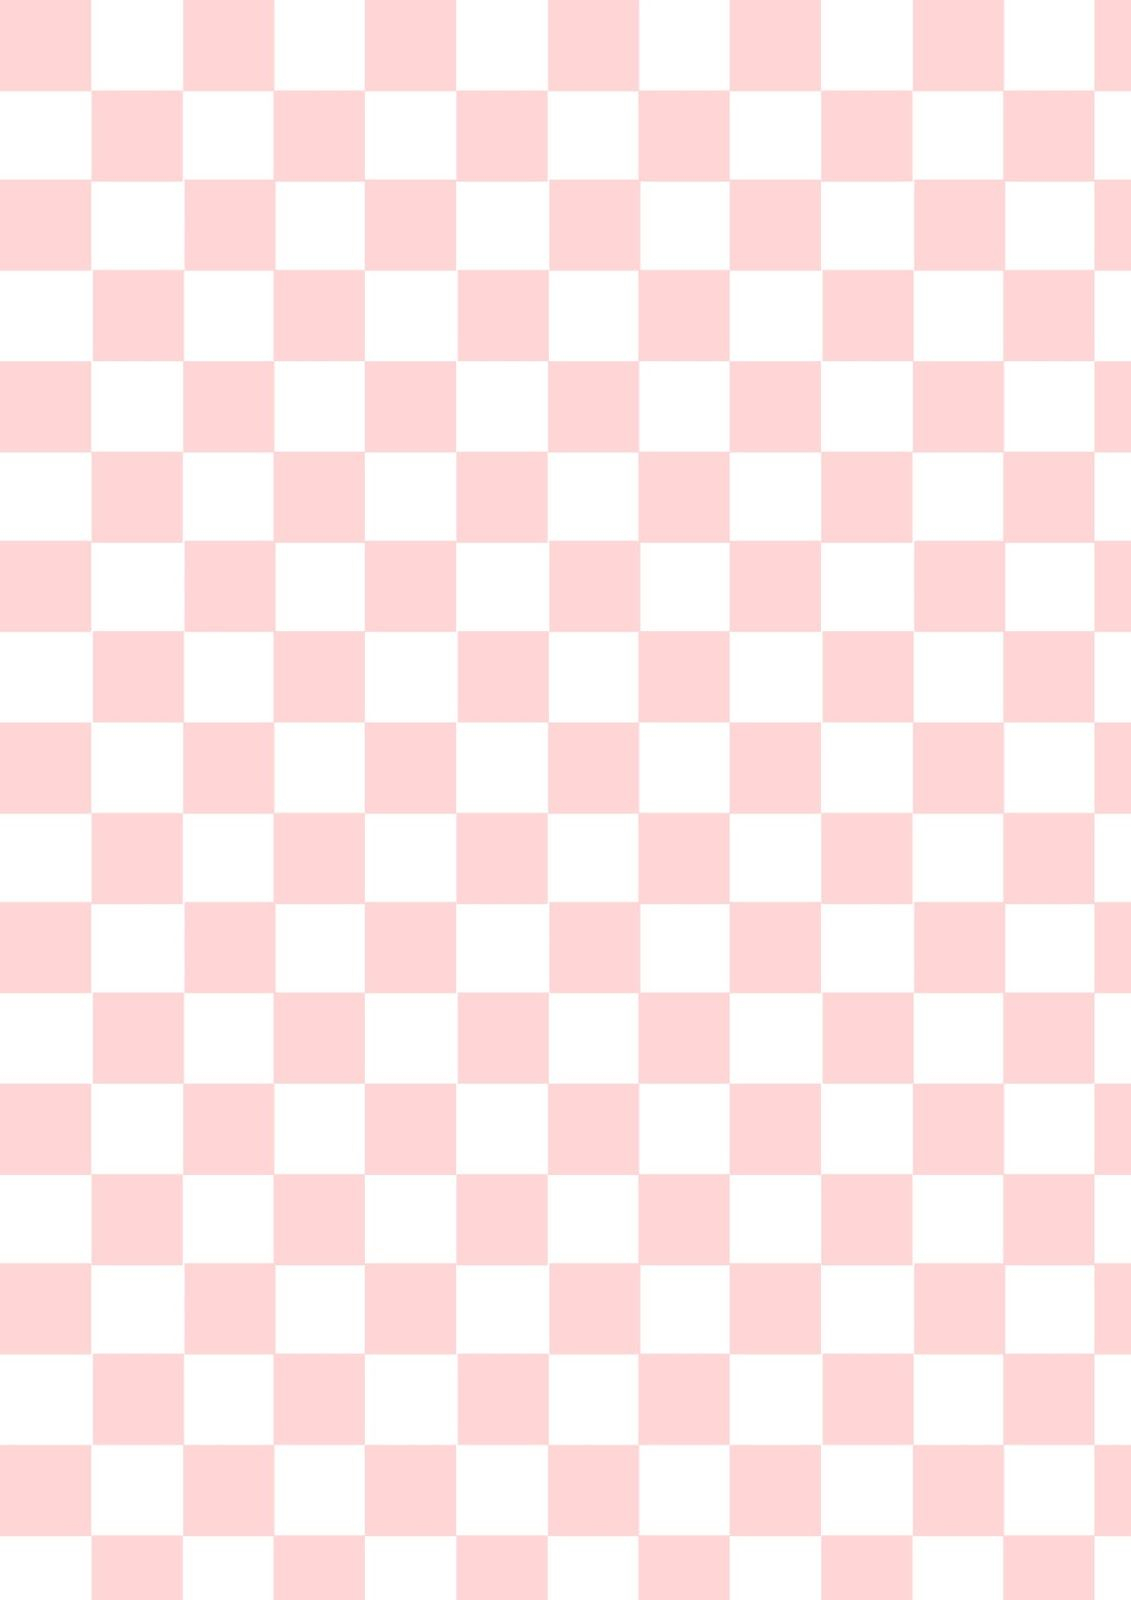 Free Printable Checkerboard Pattern Paper | Pinkwhite | Diary Note - Free Printable Wallpaper Patterns